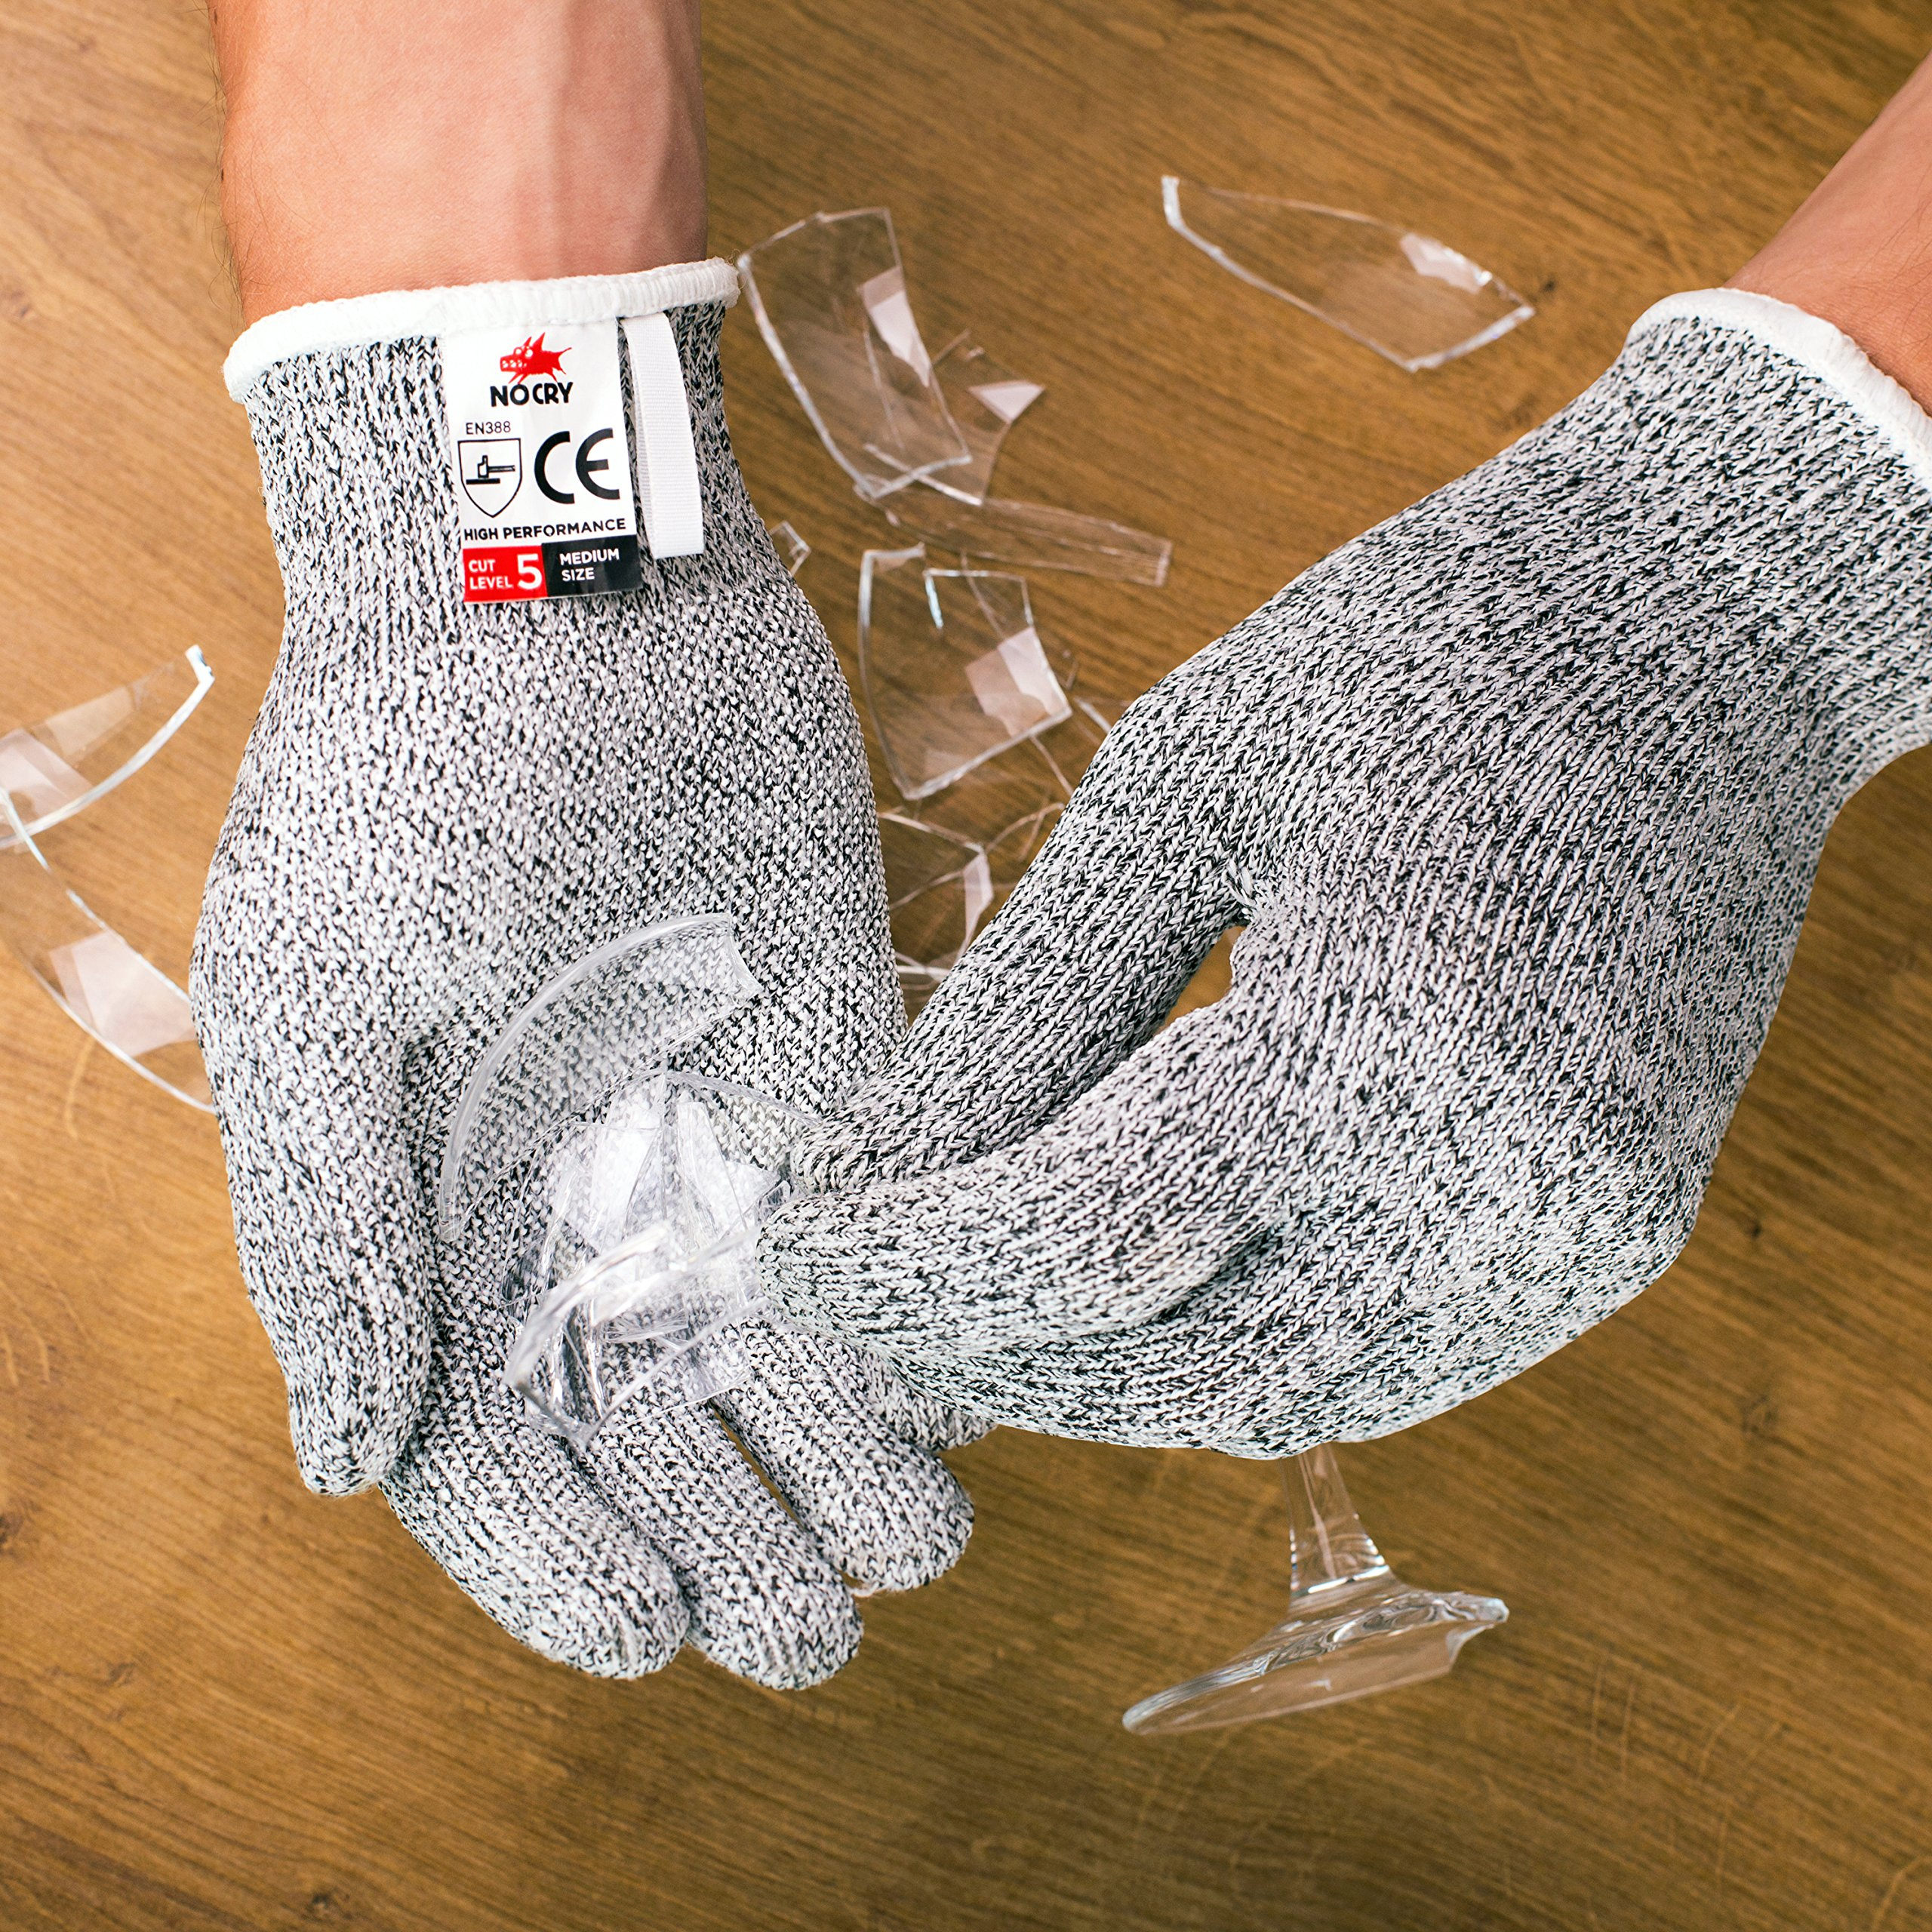 NoCry Cut Resistant Gloves with Grip Dots - High Performance Level 5 Protection, Food Grade. Size Large, Free Ebook Included! by NoCry (Image #5)